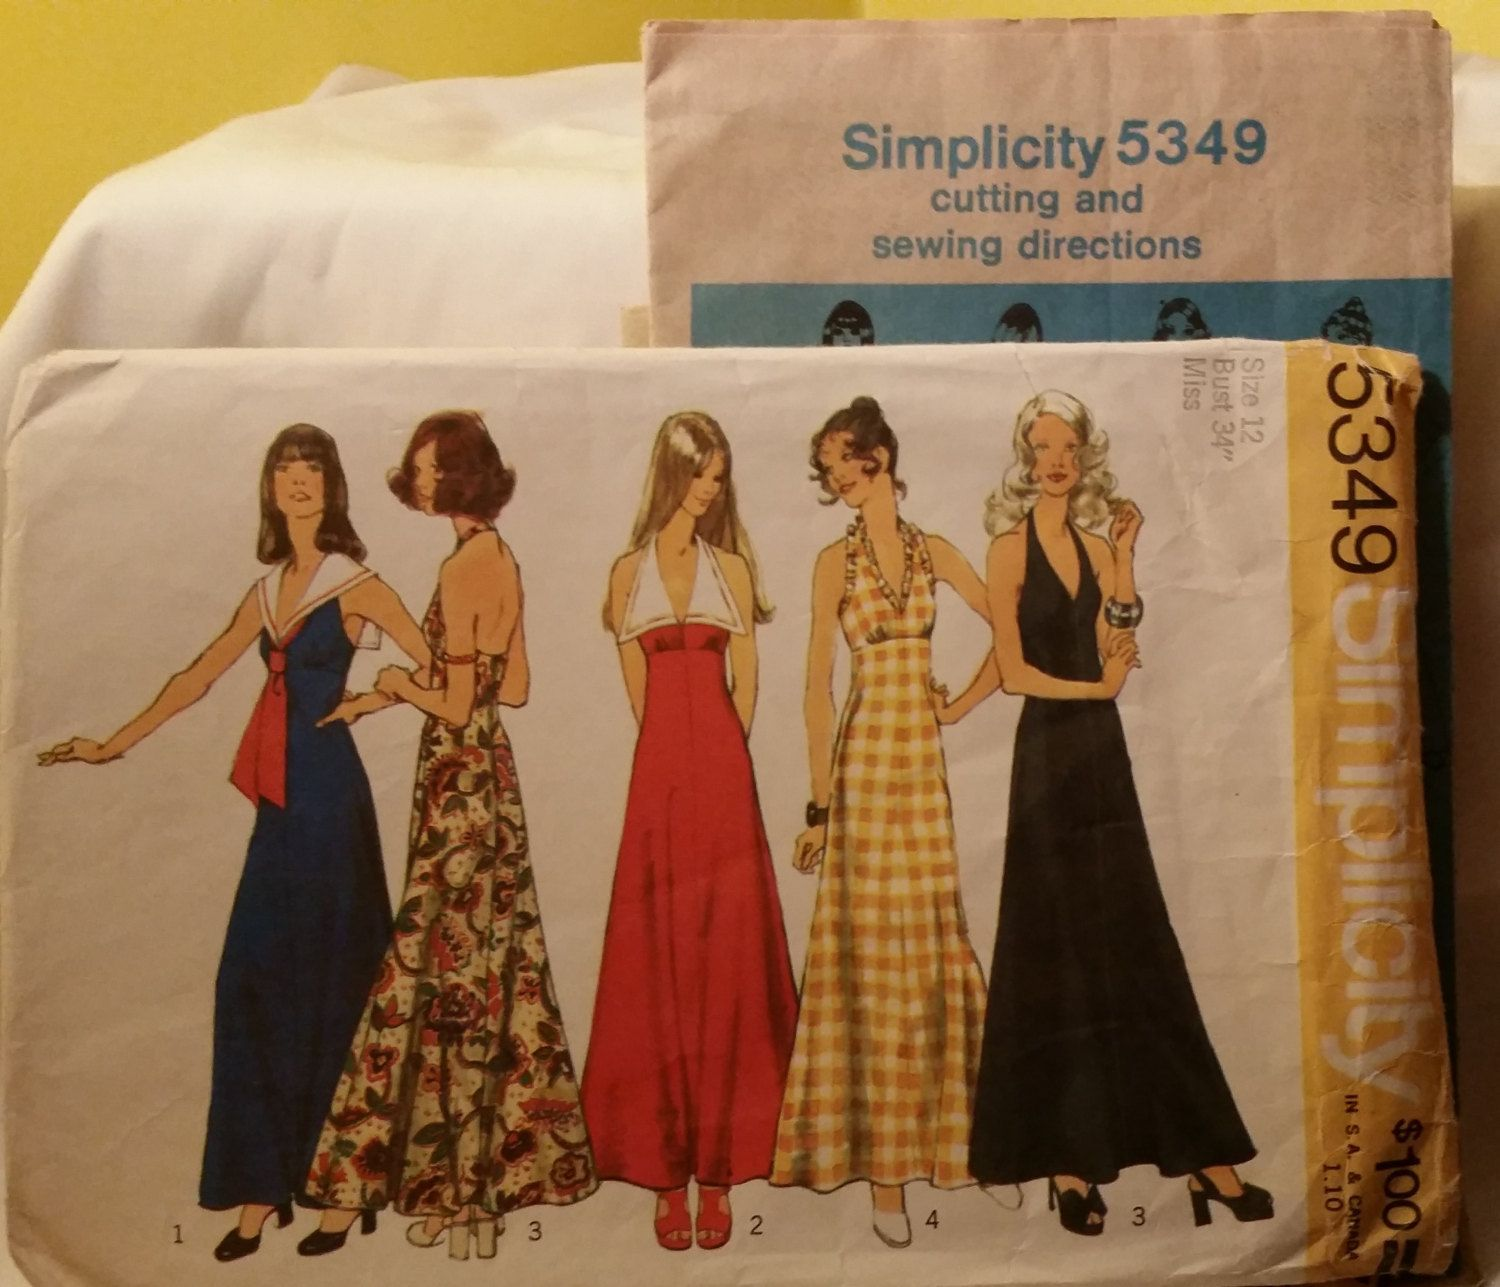 Vintage Simplicity 1972 Maxi Dress Sewing Pattern Size 12 by KitschyMaowVintage on Etsy https://www.etsy.com/listing/225027157/vintage-simplicity-1972-maxi-dress